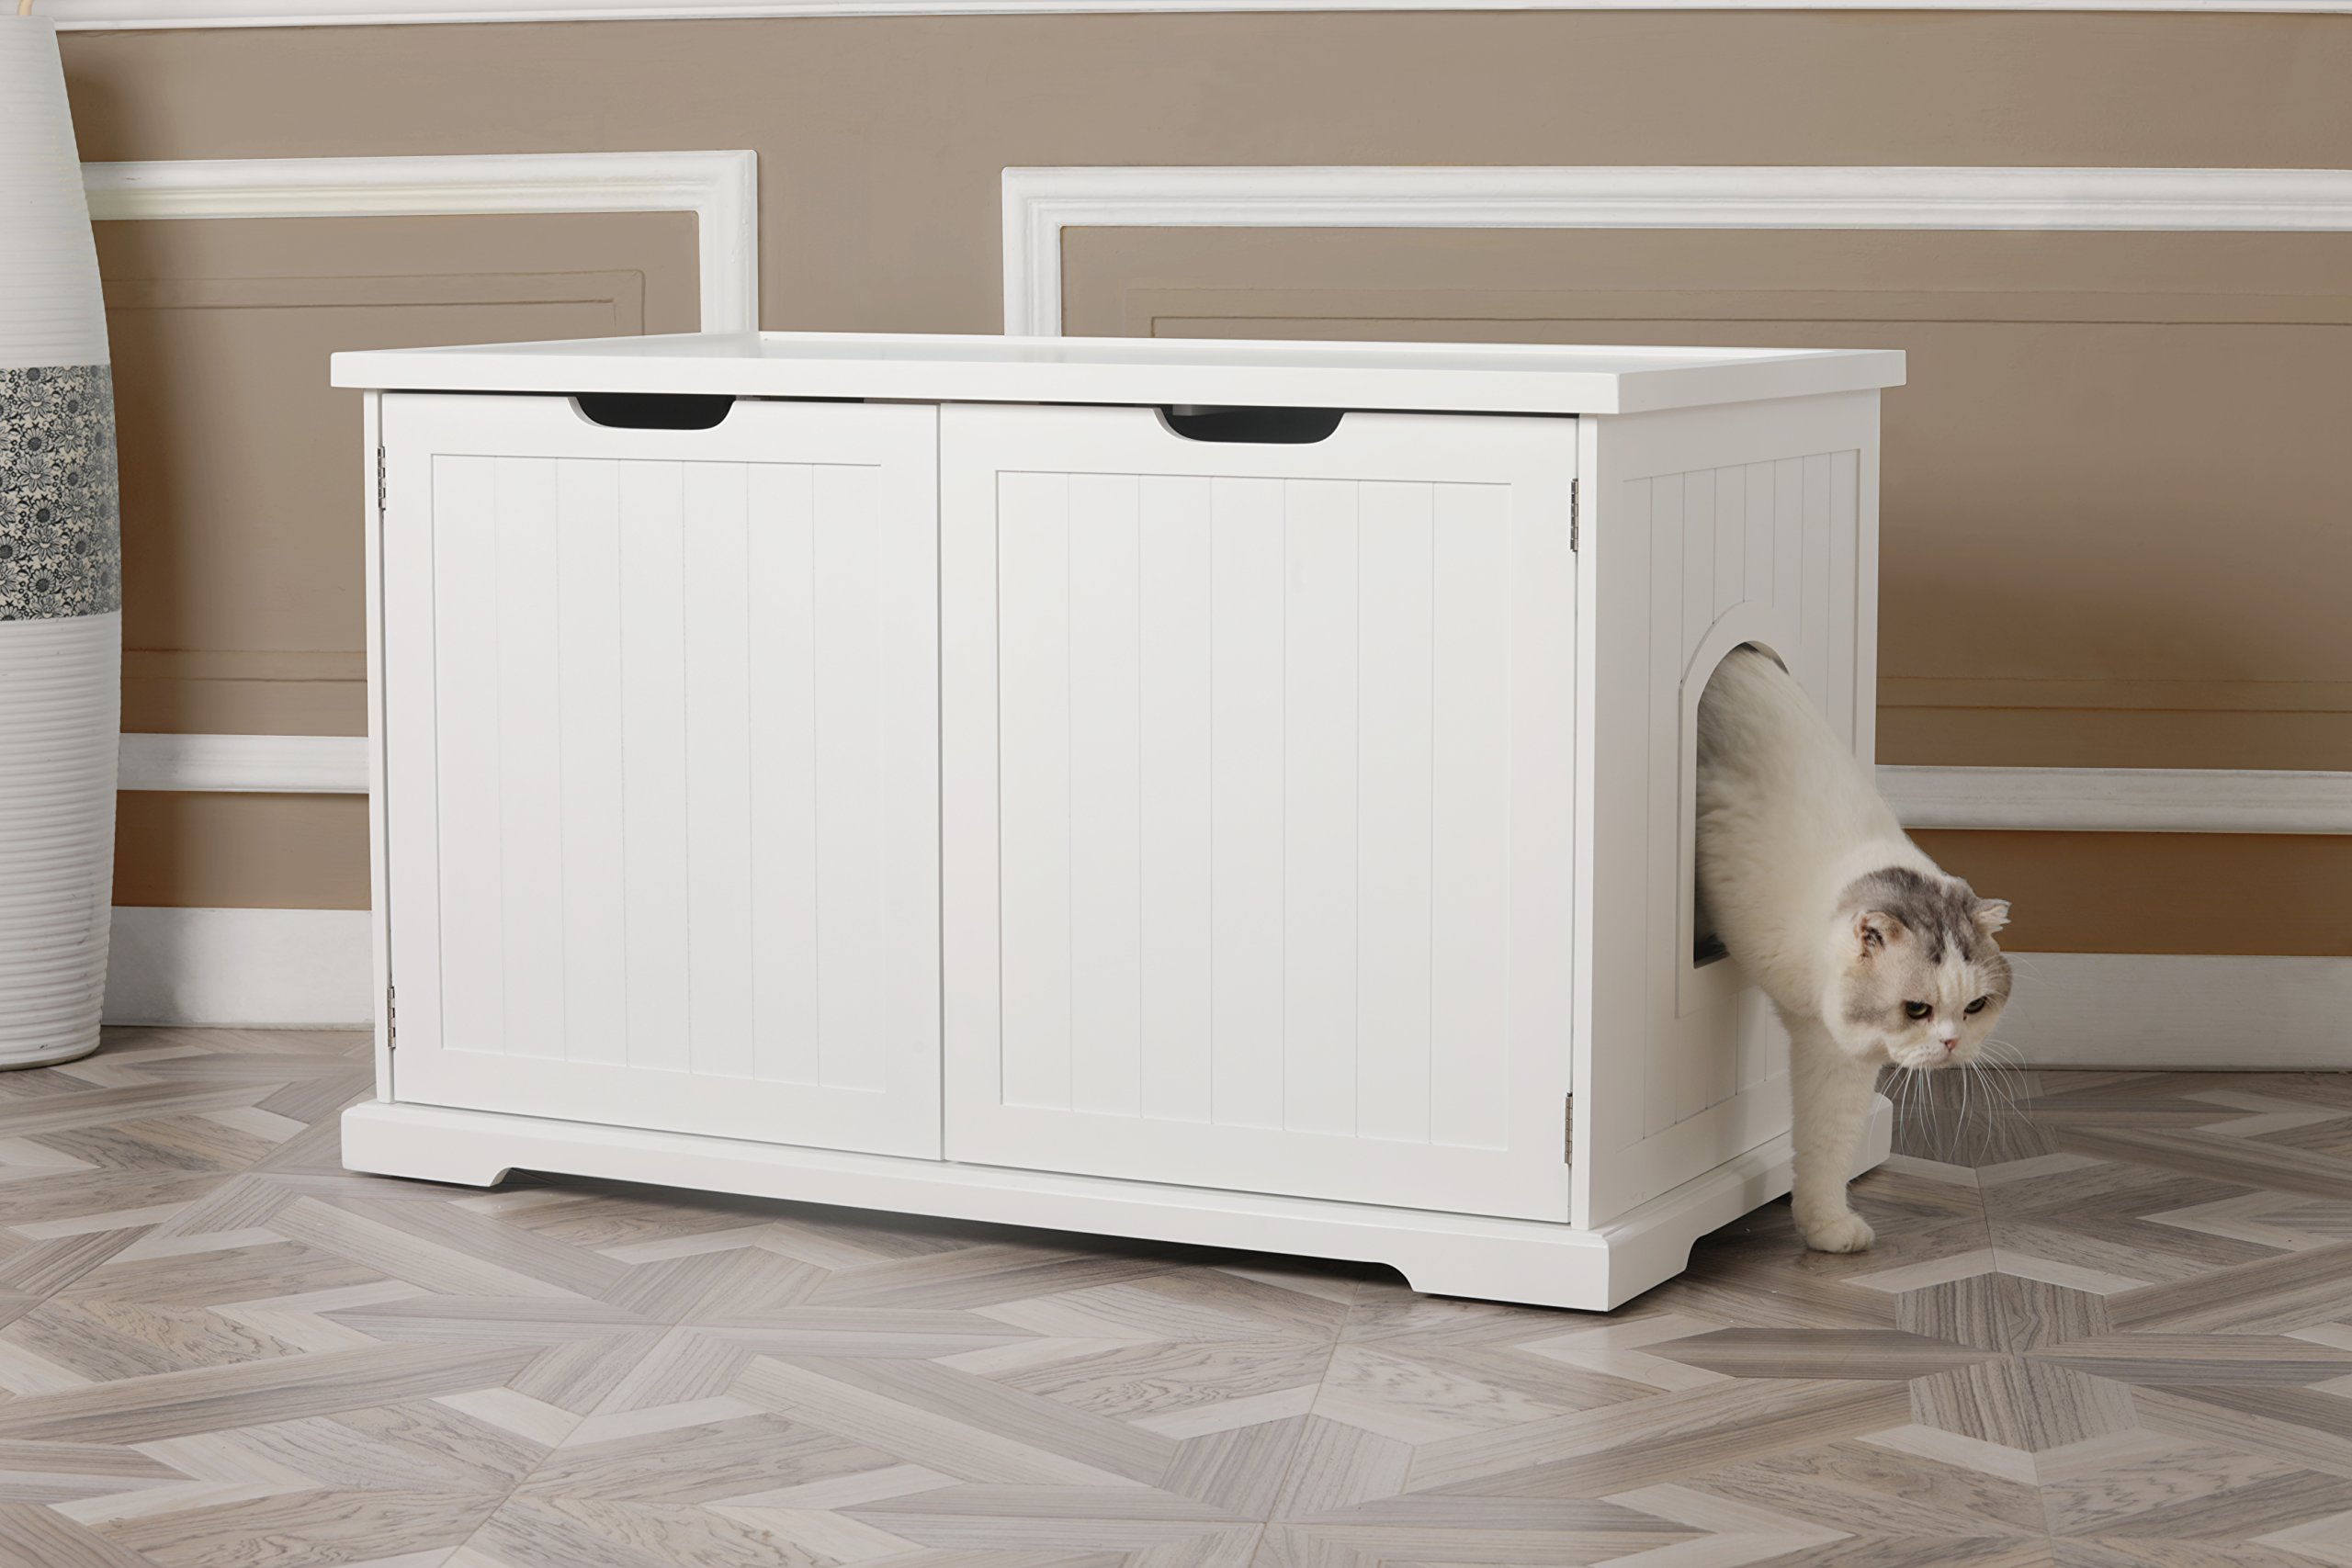 Merry Products Cat Washroom Bench, White by Merry (Image #6)